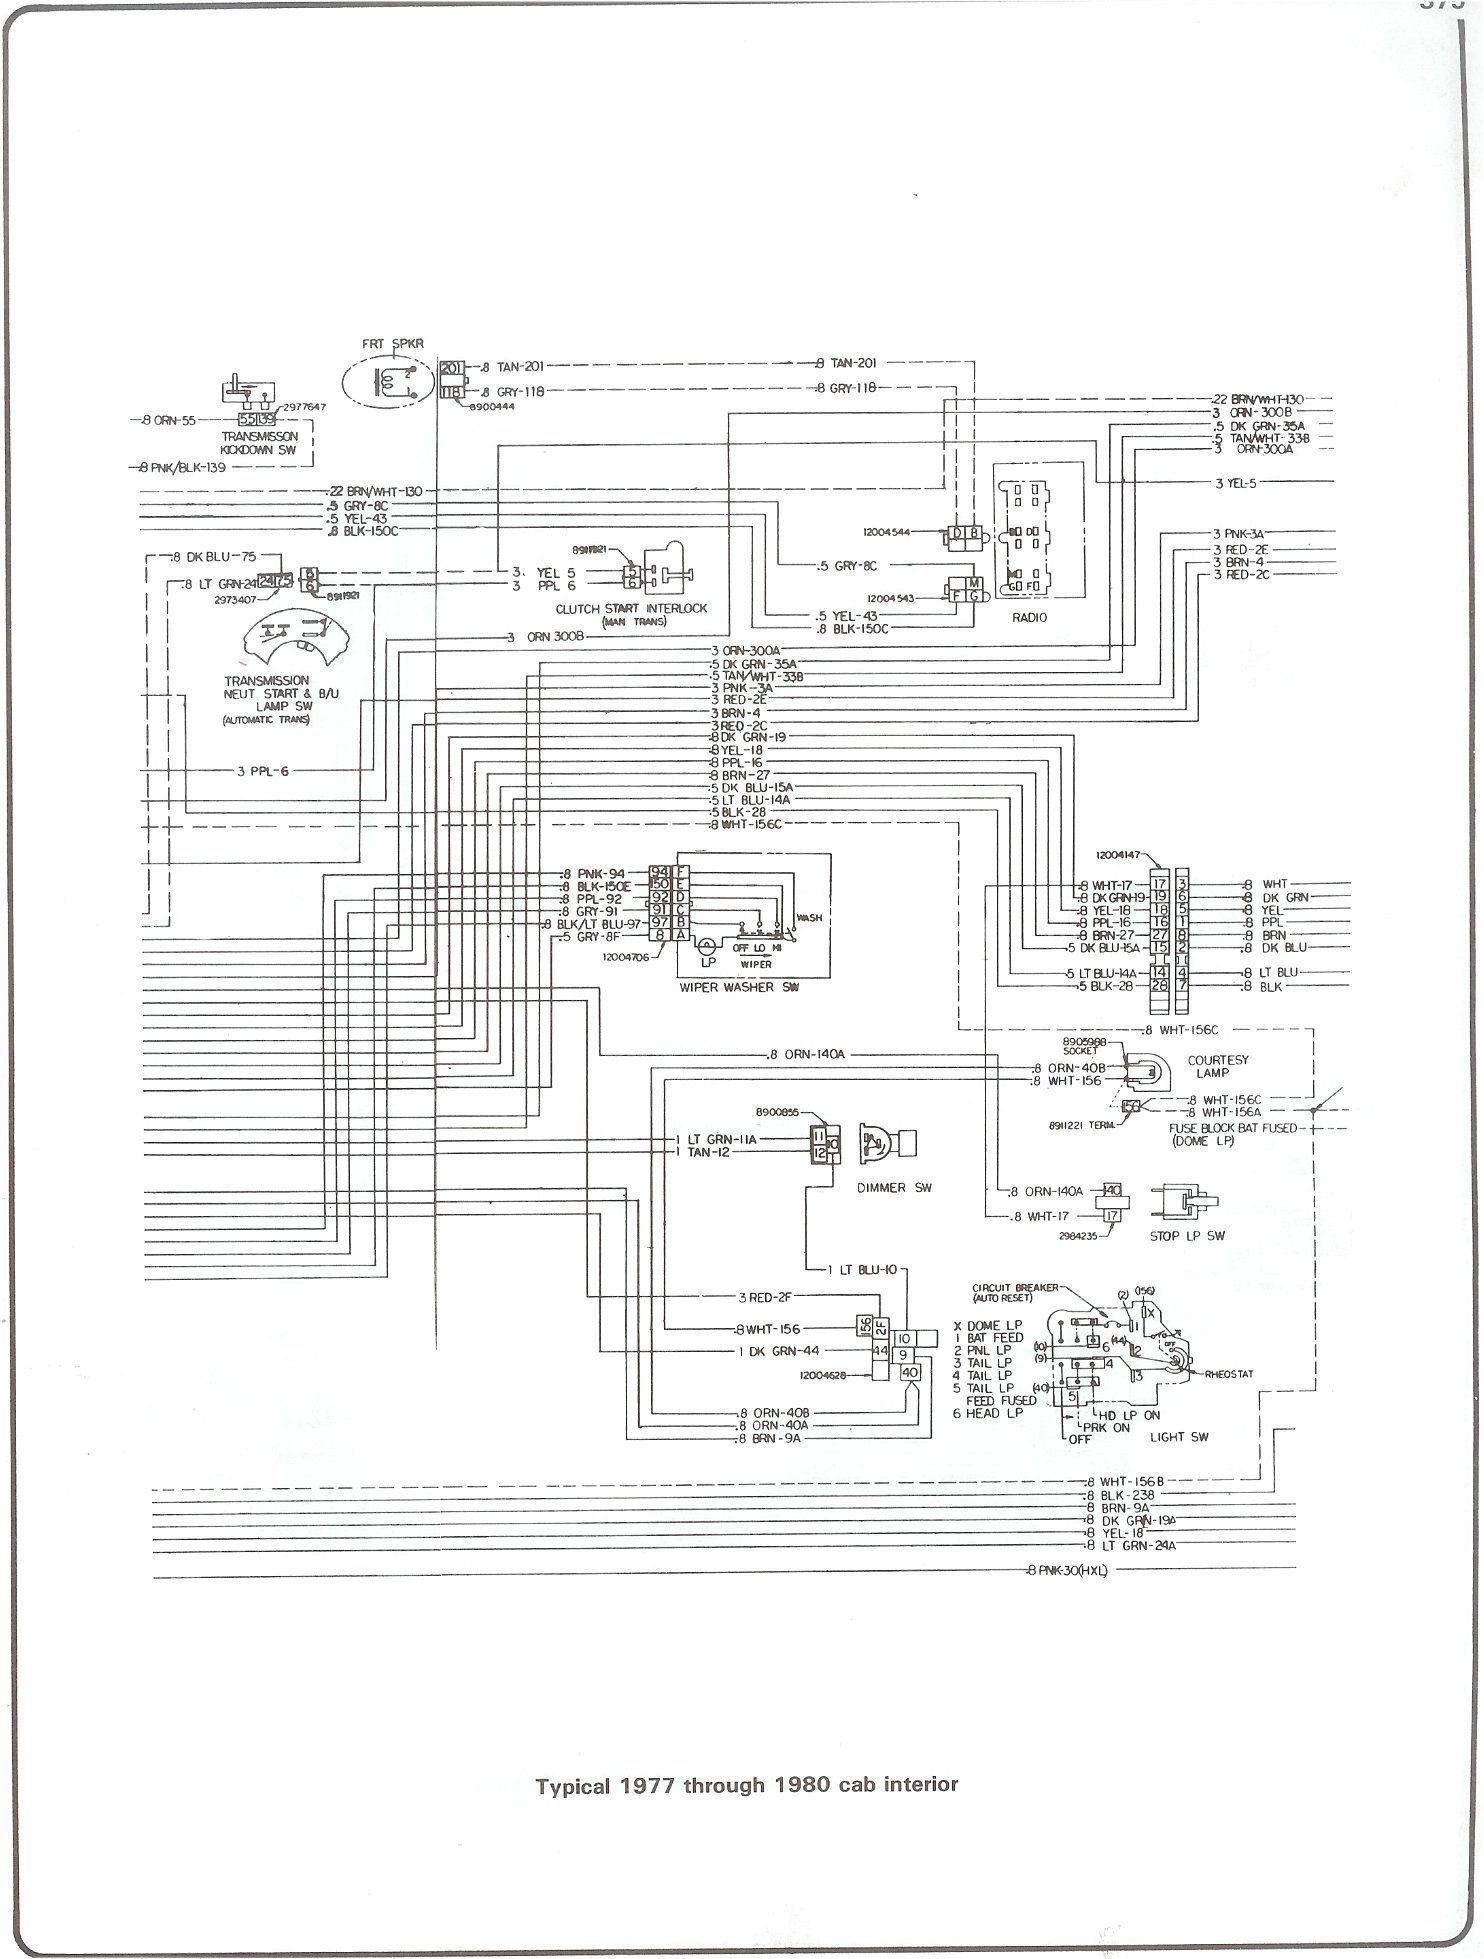 77 80_cab_inter complete 73 87 wiring diagrams Basic Engine Wiring Diagram Chevy at suagrazia.org